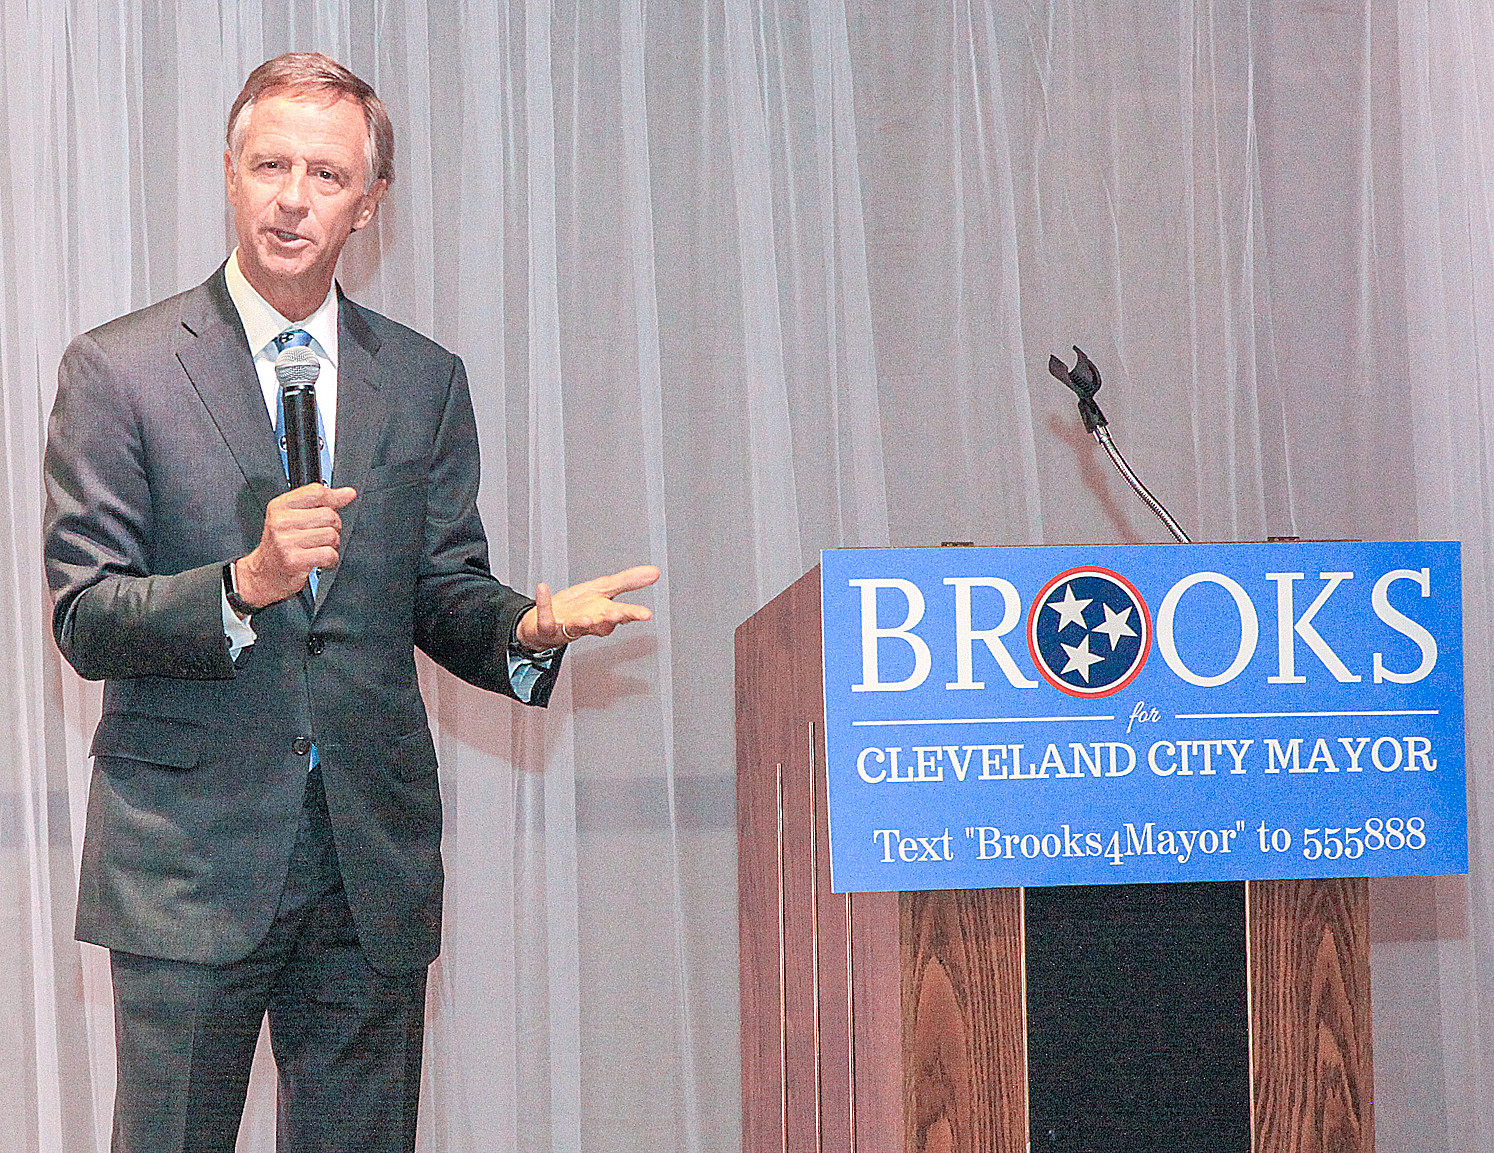 GOV. BILL HASLAM was the keynote speaker at the Kevin Brooks for Cleveland City Mayor Campaign Kickoff on Friday evening at the Museum Center at Five Points. Haslam endorsed Brooks during his Cleveland visit.